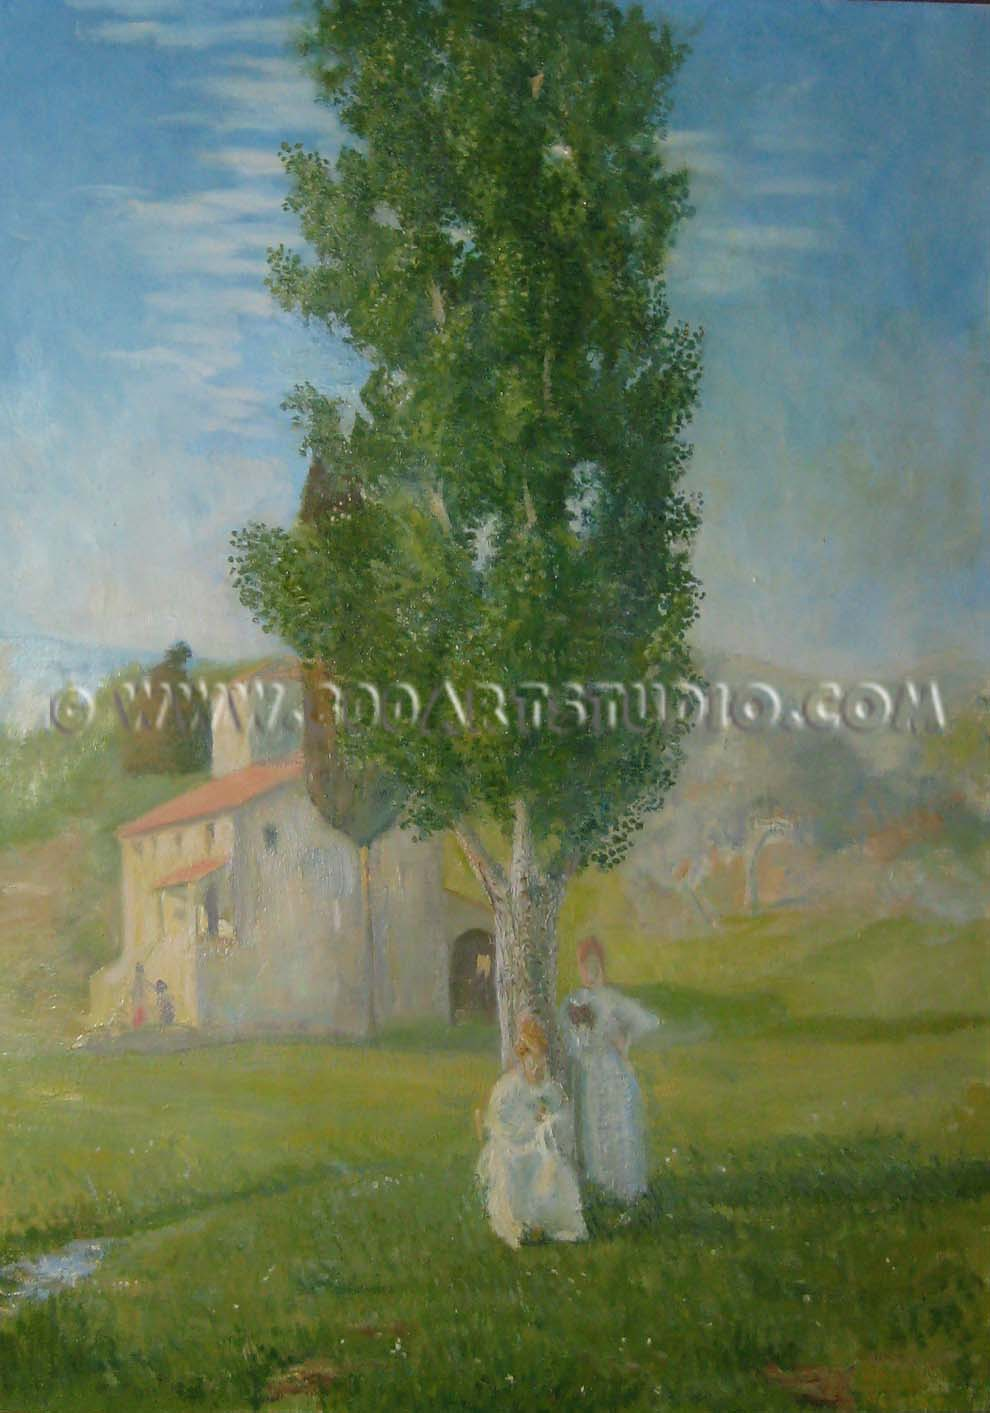 Baccio Maria Bacci - Women under the poplar